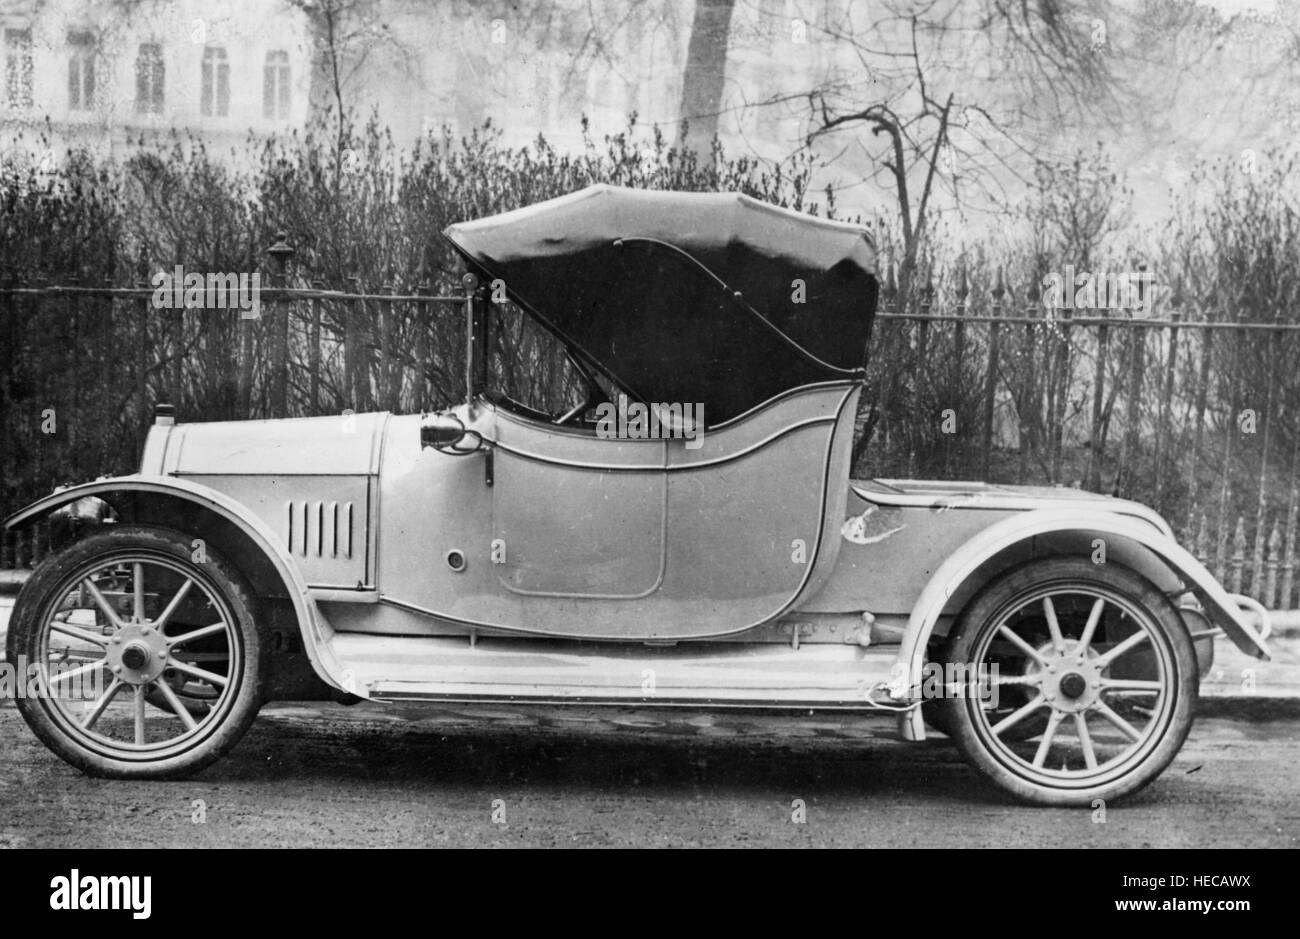 1910 Hillman 12/15hp - Stock Image